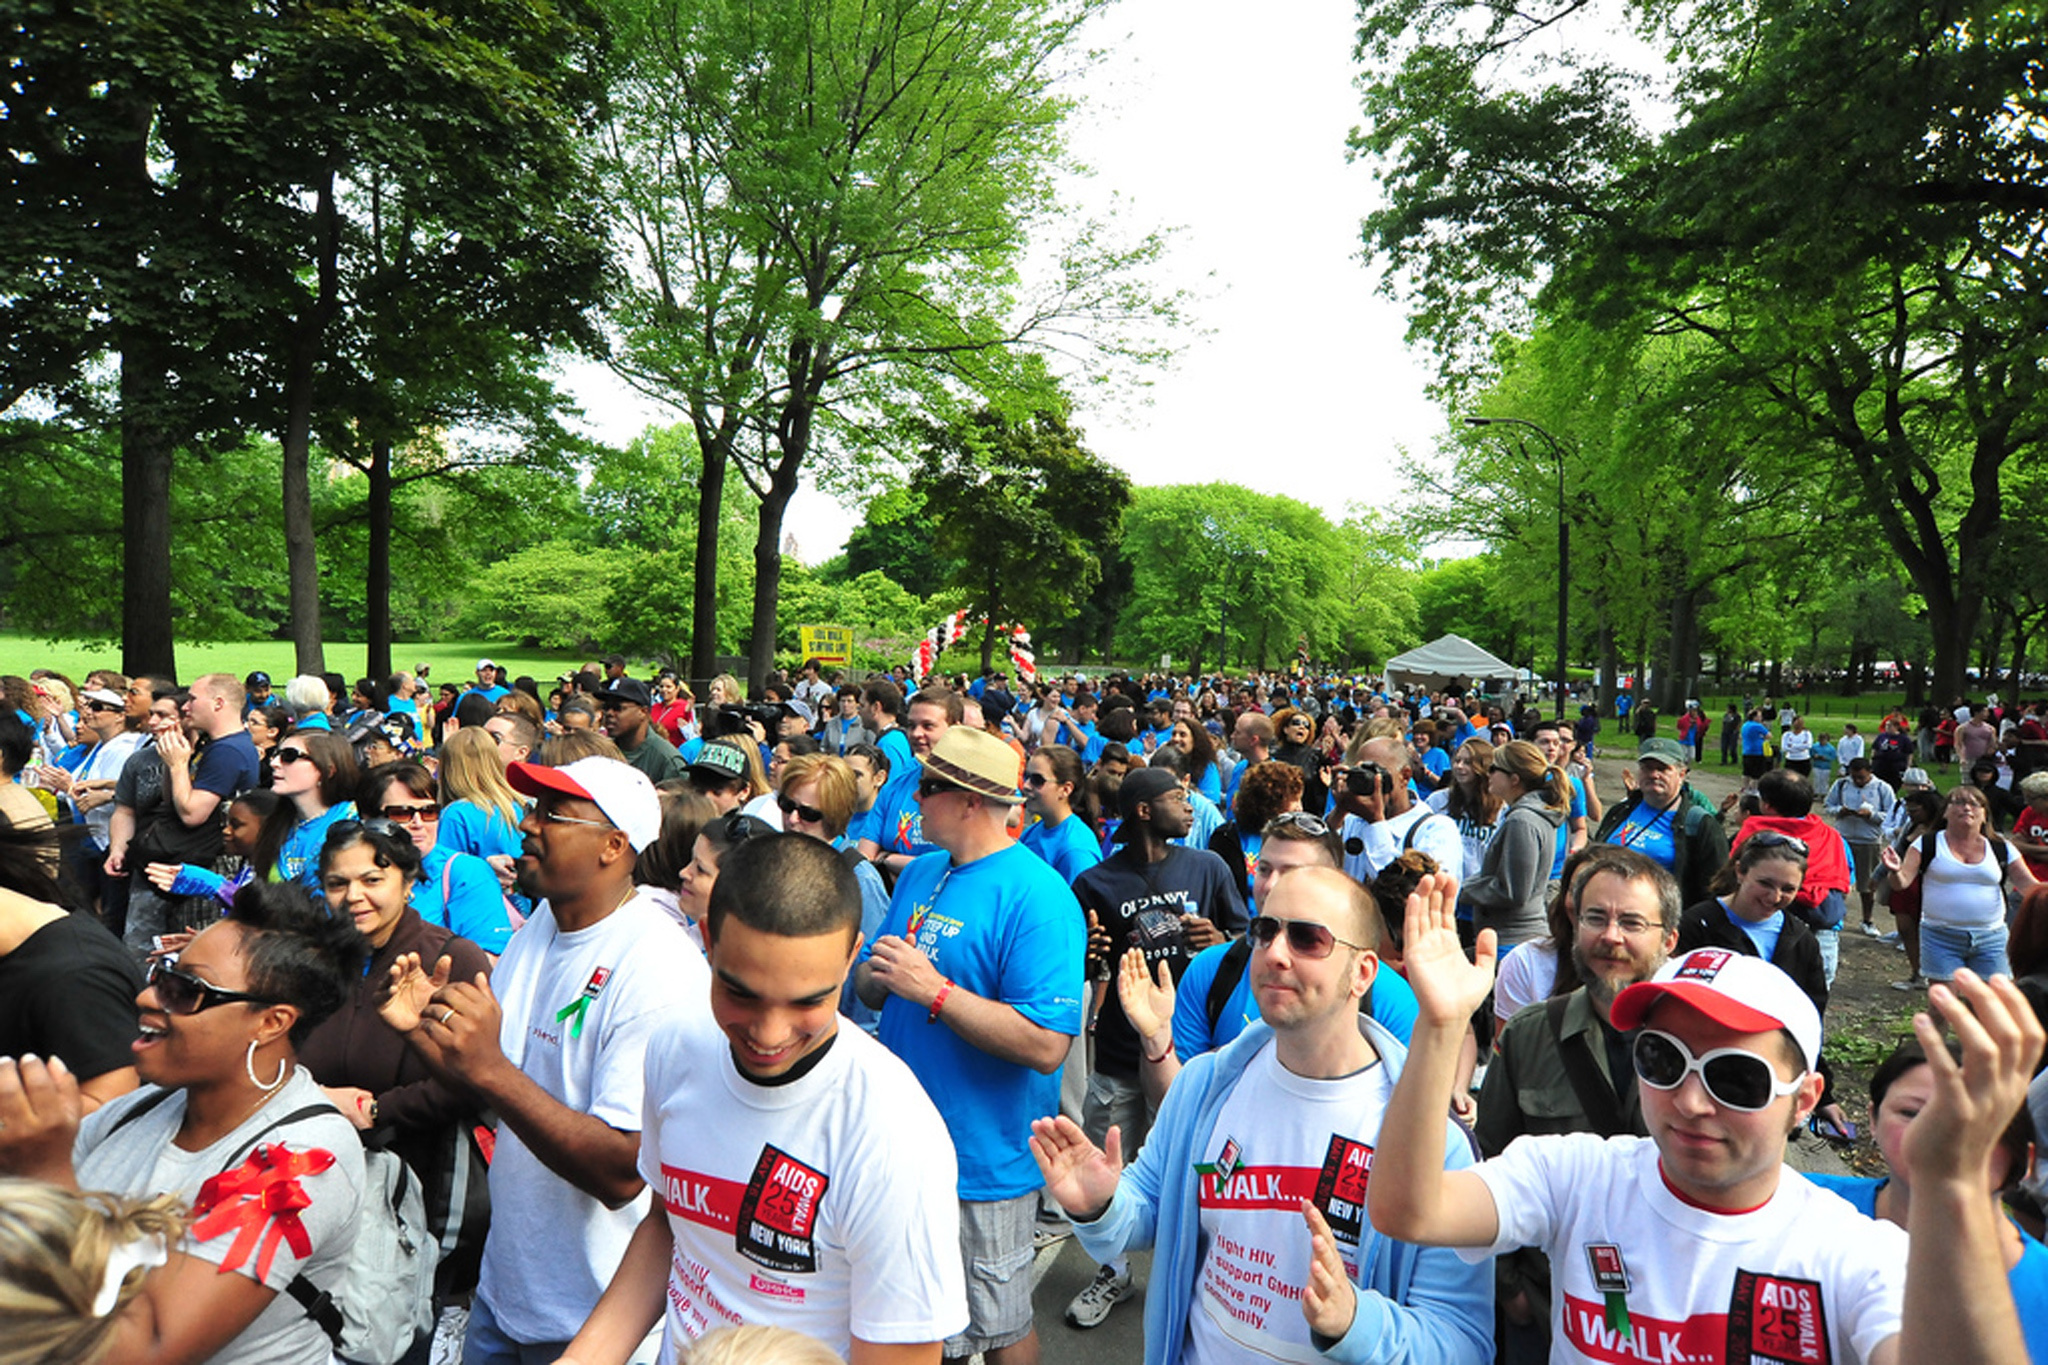 Join the AIDS Walk New York